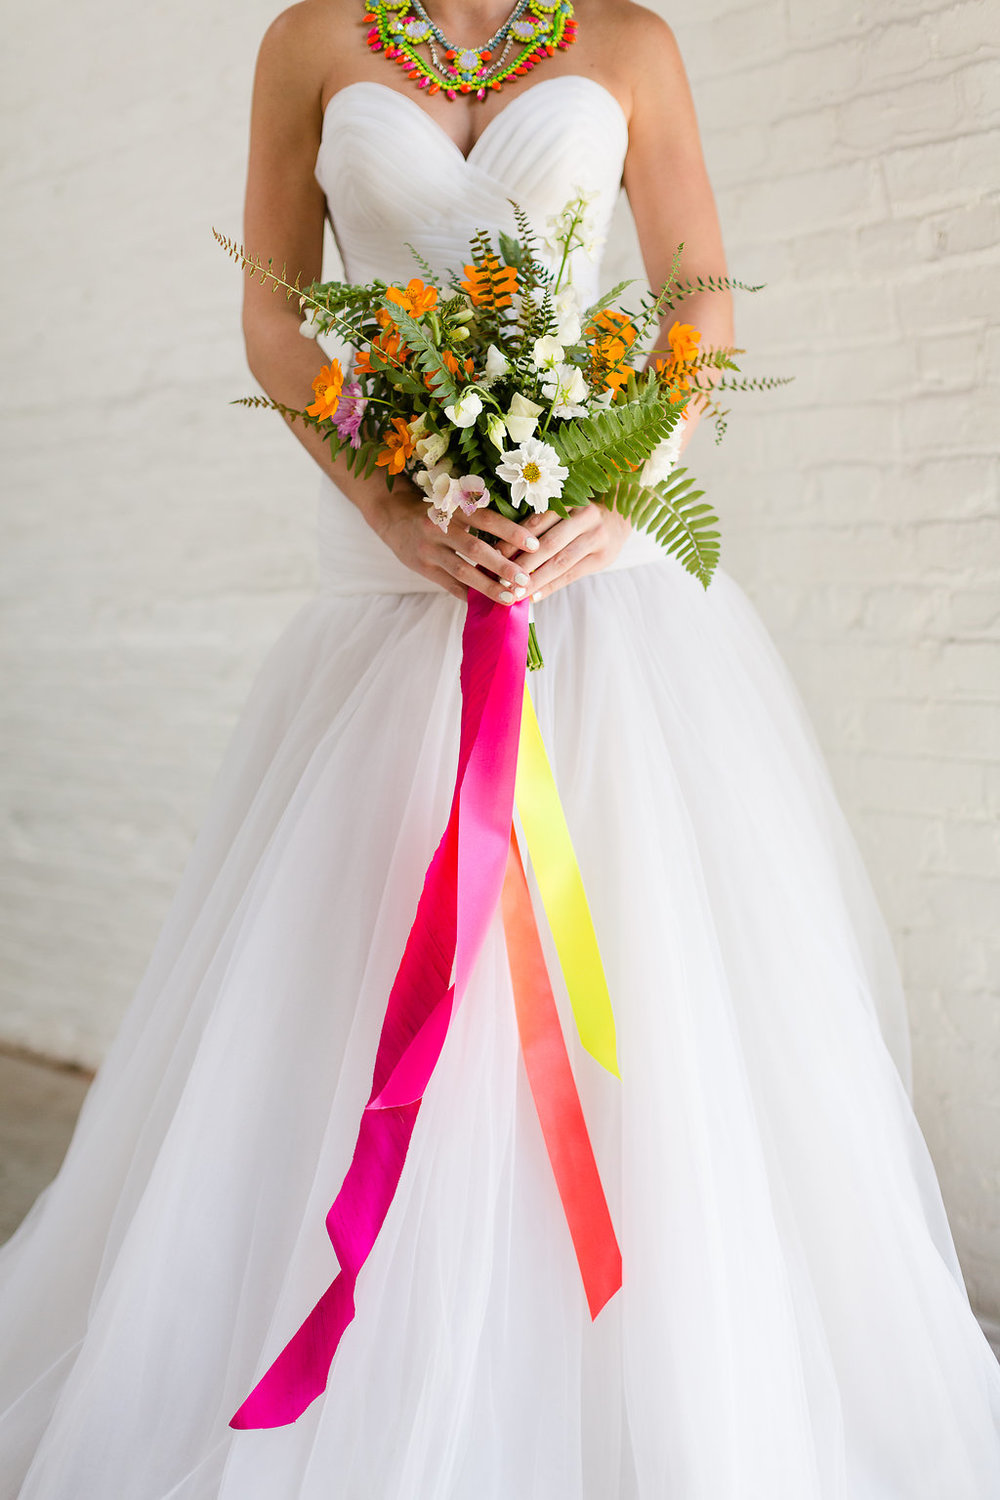 Neon Wedding Bouquet with Ribbons by Taproot Flowers / photo by Jessica Haley Photography